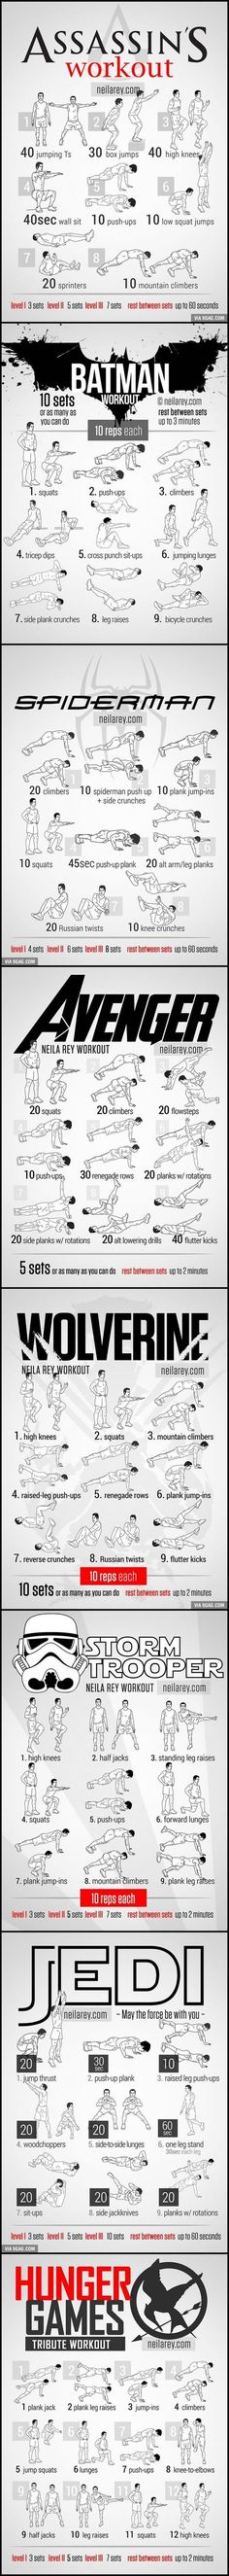 Assassin's Creed, Batman, Spiderman, Avenger's, Wolverine, Storm Trooper, Jedi, and Hunger Games styled workout.